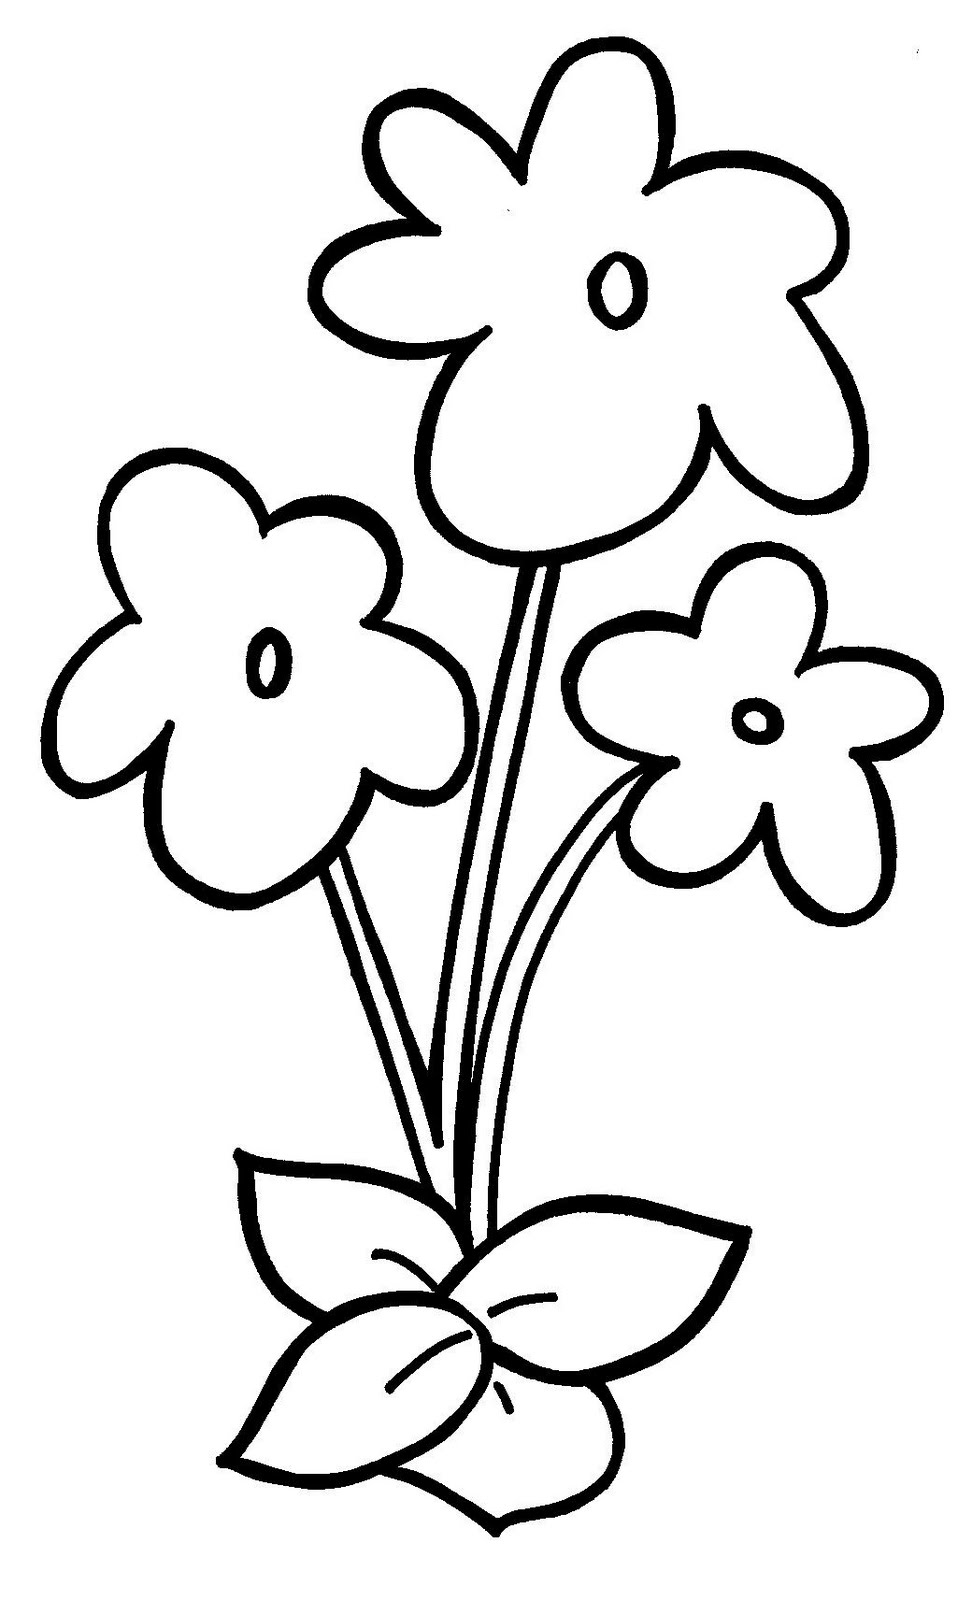 flower templates for coloring flower template for children39s activities activity shelter coloring for flower templates